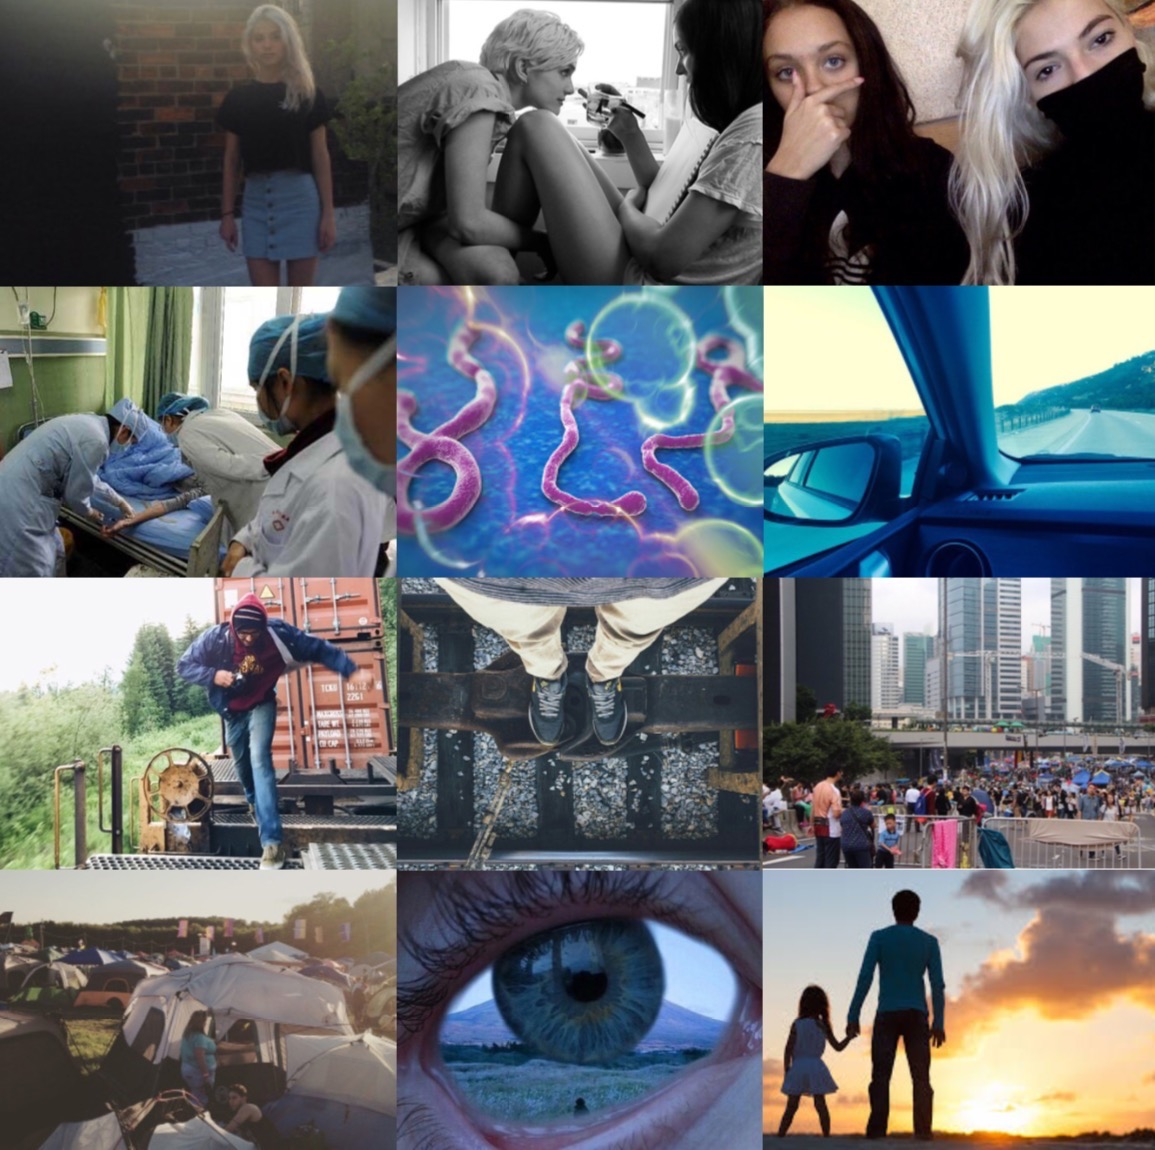 Images by Tafv Sampson, Kit Keenan, and others